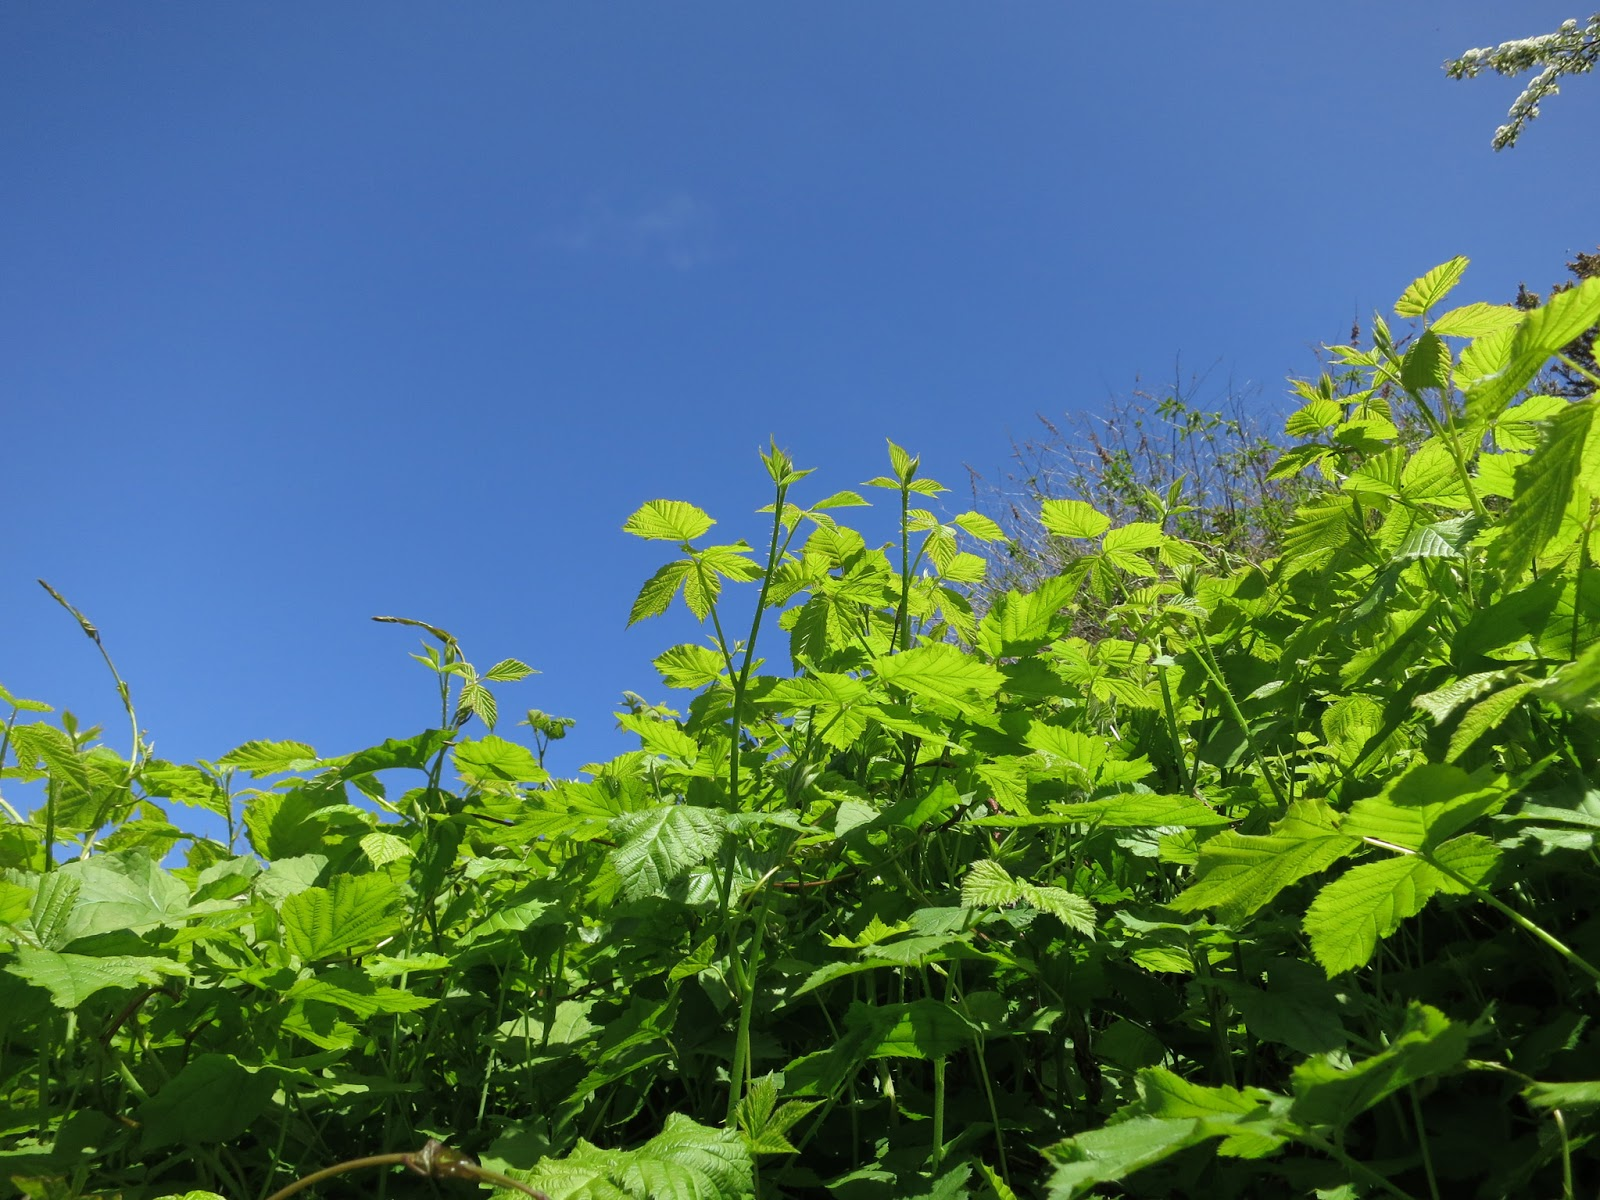 New bramble leaves against blue sky with bindweed rising above them